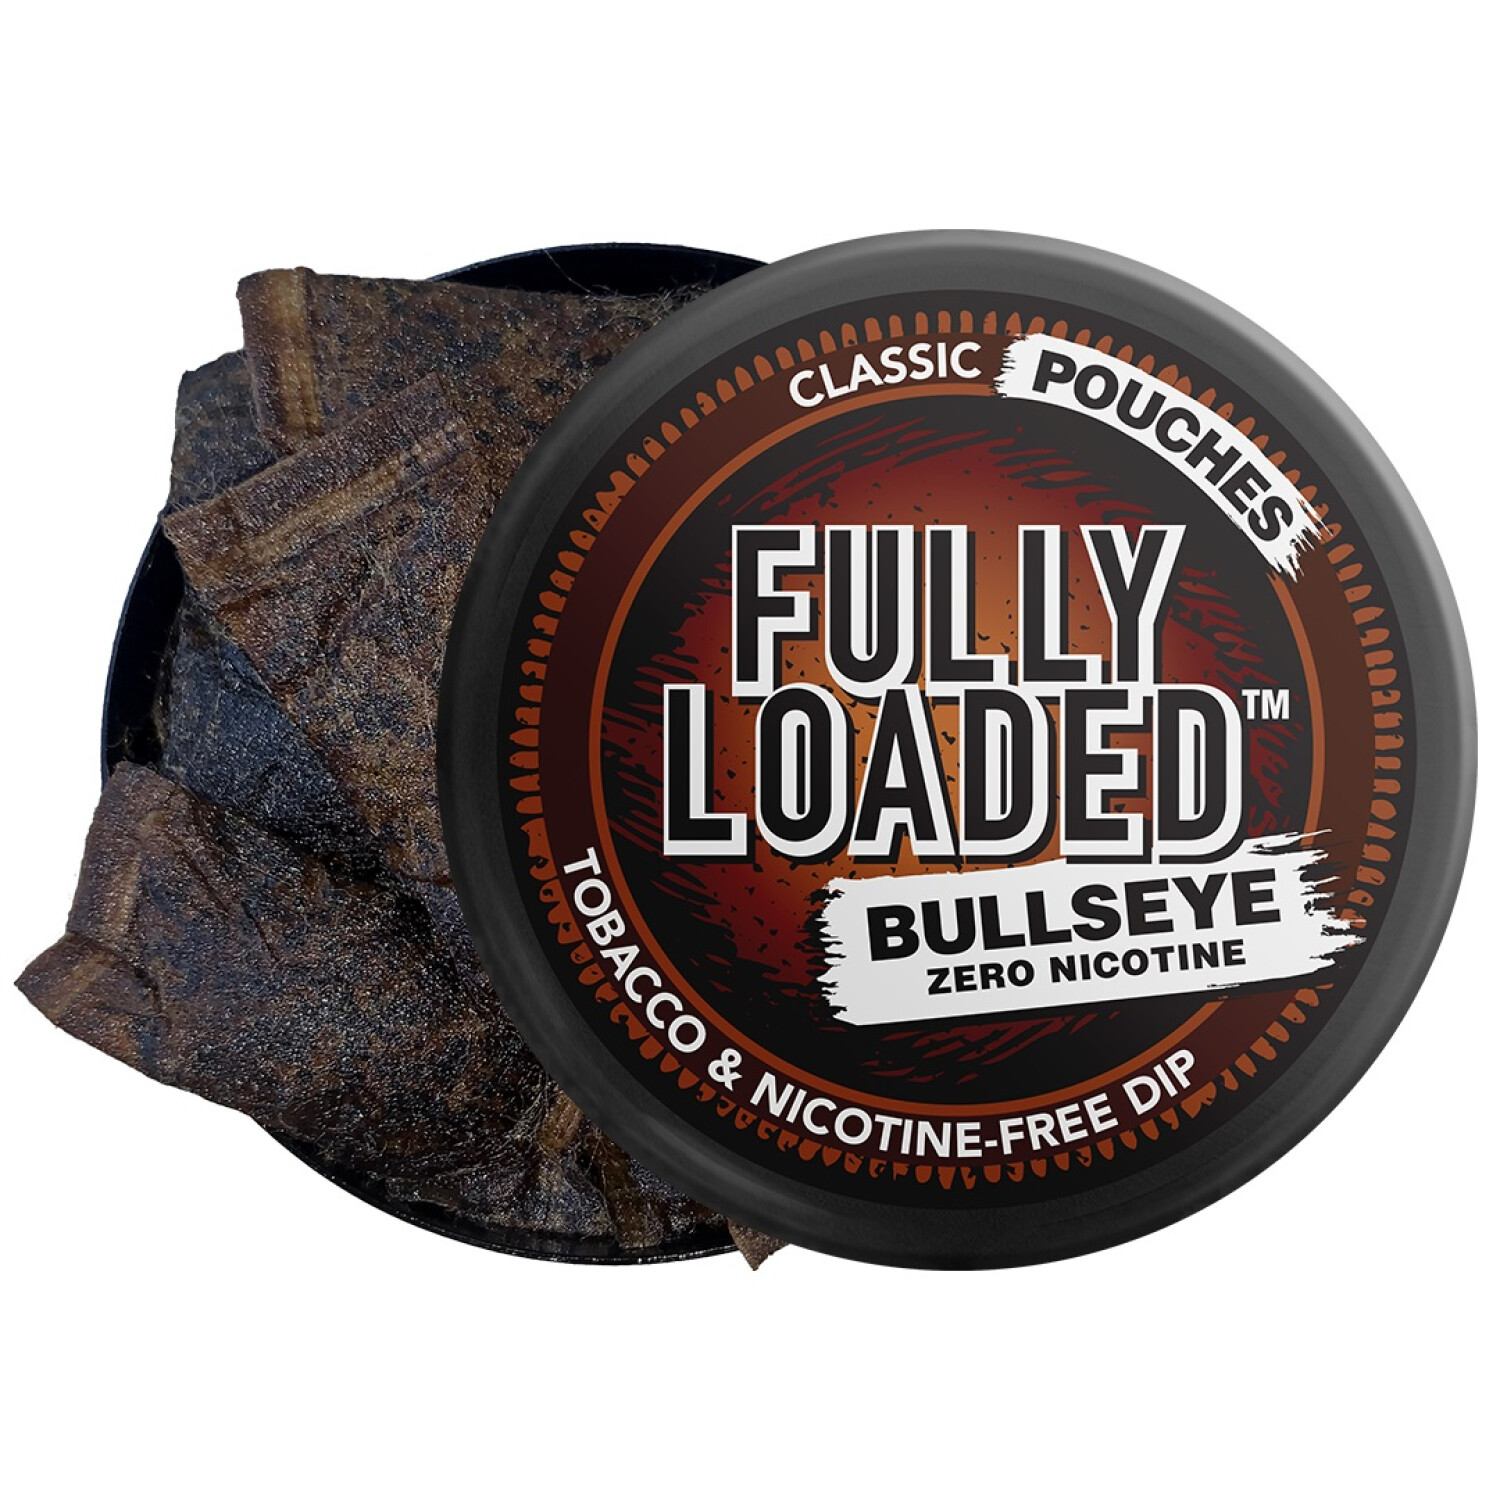 Fully Loaded Chew Tobacco and Nicotine Free Classic Bullseye Pouches Signature Flavor, Chewing Alternative-5 Cans